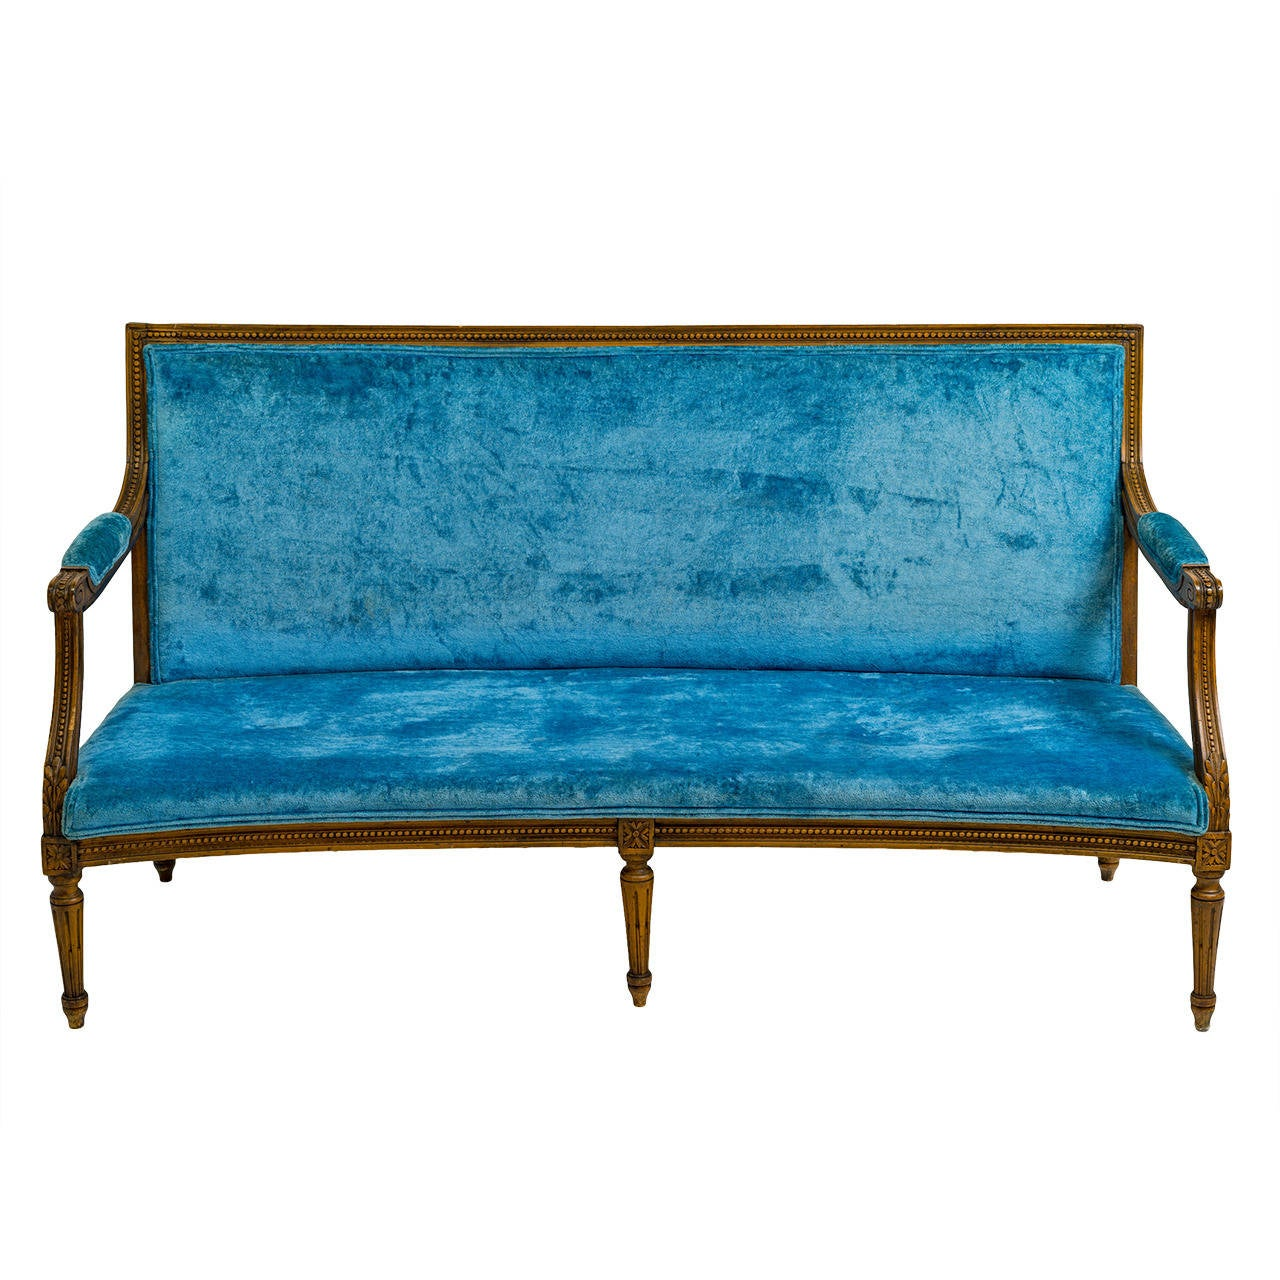 curved settee at 1stdibs